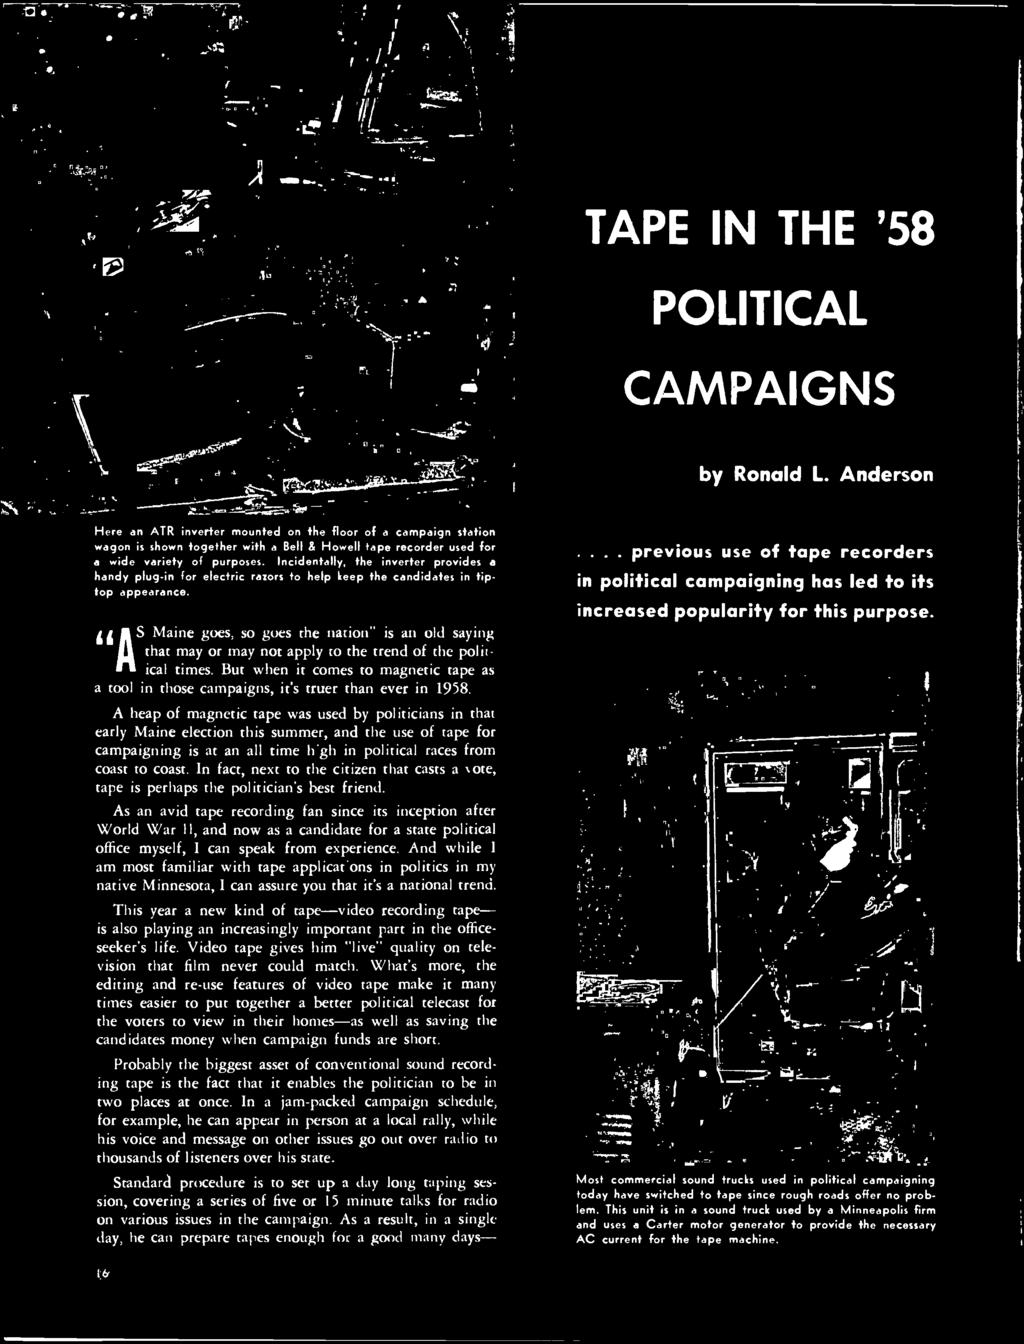 Mr Fzoy Perrin 231 Wildland Ave 9 Ct Rutherford Nj Dcmbr Clavioline Concert Model Tone Generator Schematic Wiring Diagram But When It Comes To Magnetic Tape As A Tool In Those Campaigns Its Truer